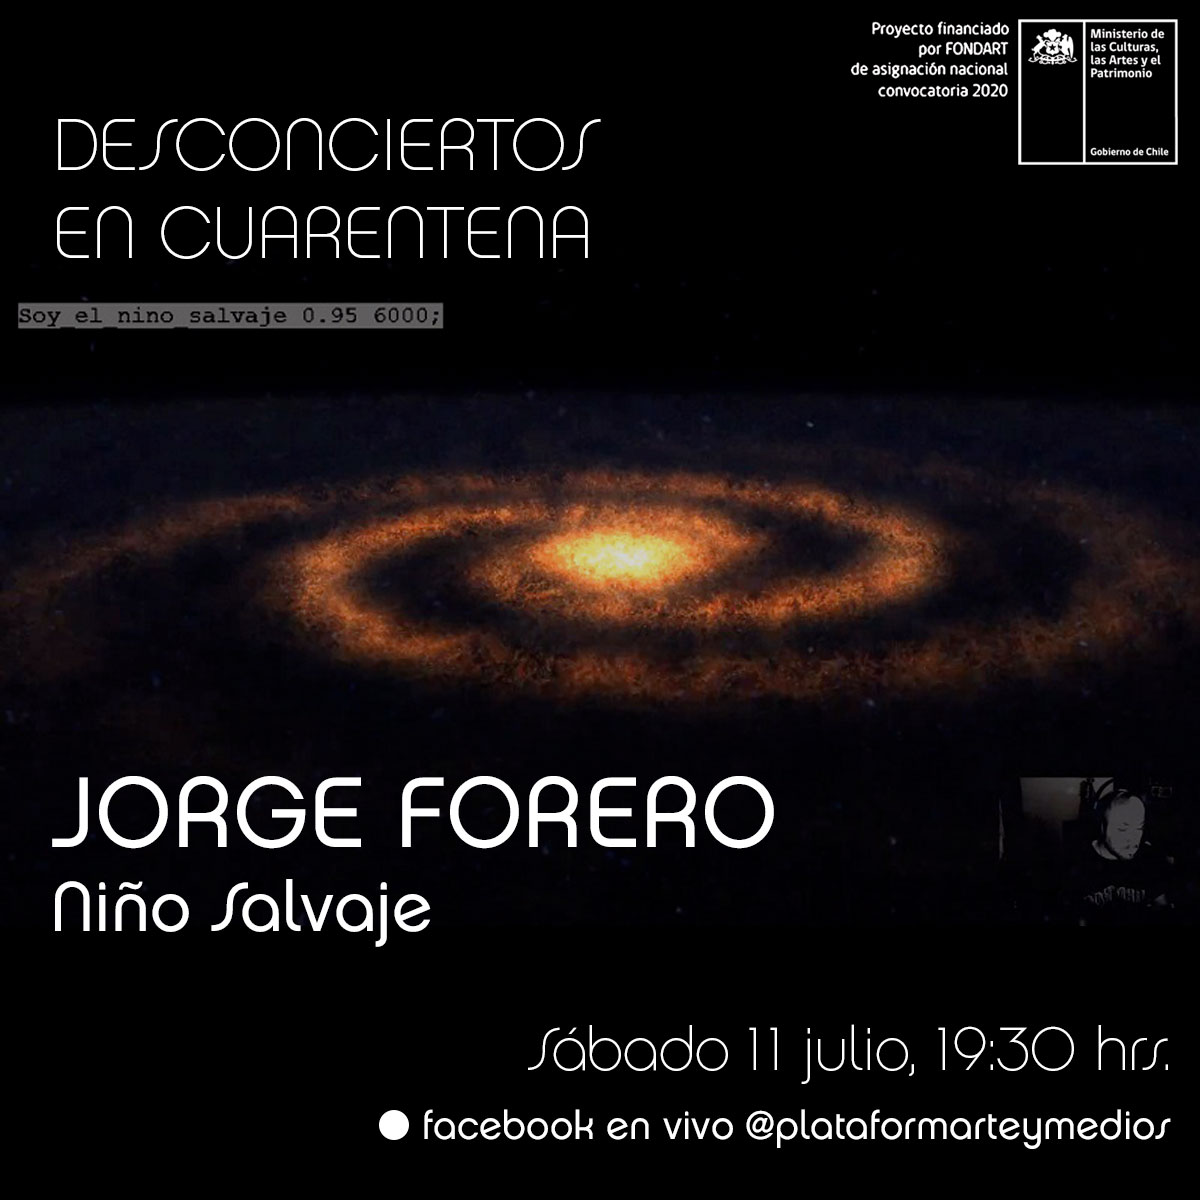 desconcierto forero